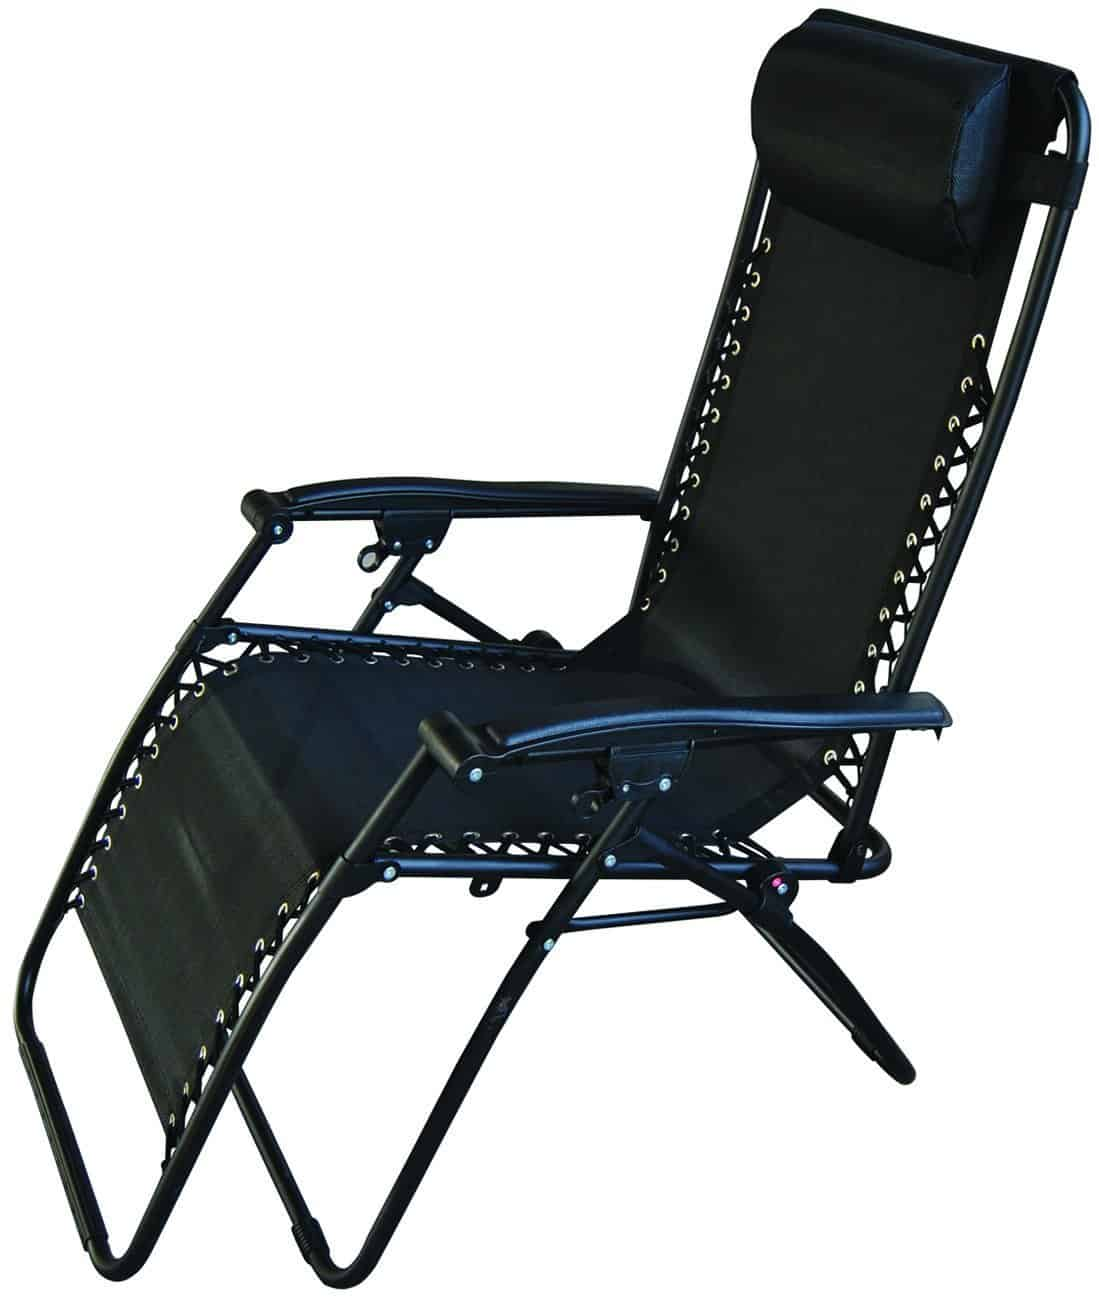 Reclining Camp Chair Camping Chair Reviews What Are The Best Camping Chairs